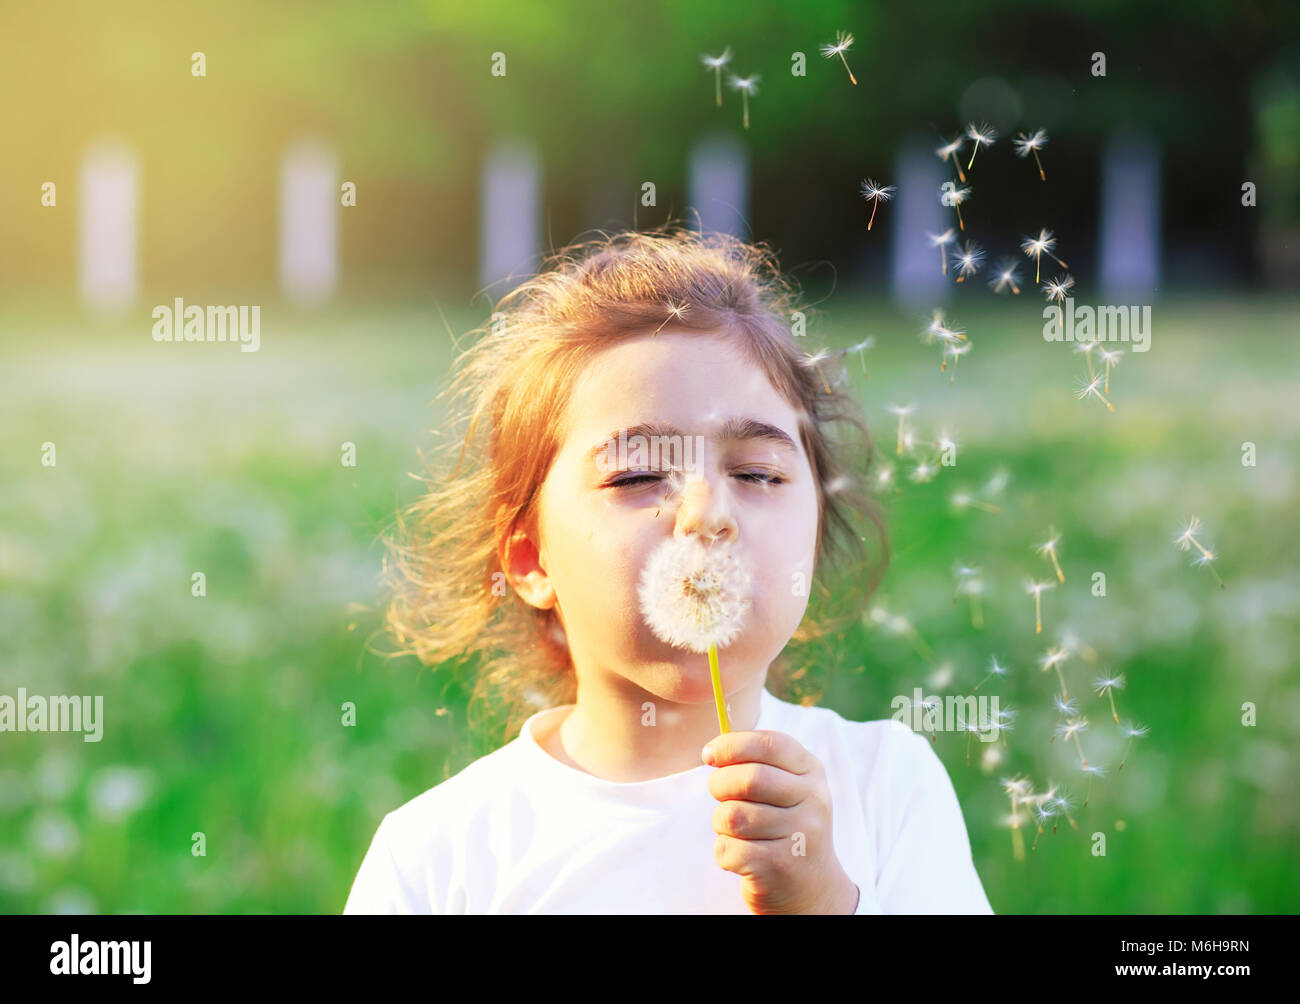 Beautiful little Girl blowing dandelion flower in sunny summer park. Happy cute kid having fun outdoors at sunset. - Stock Image